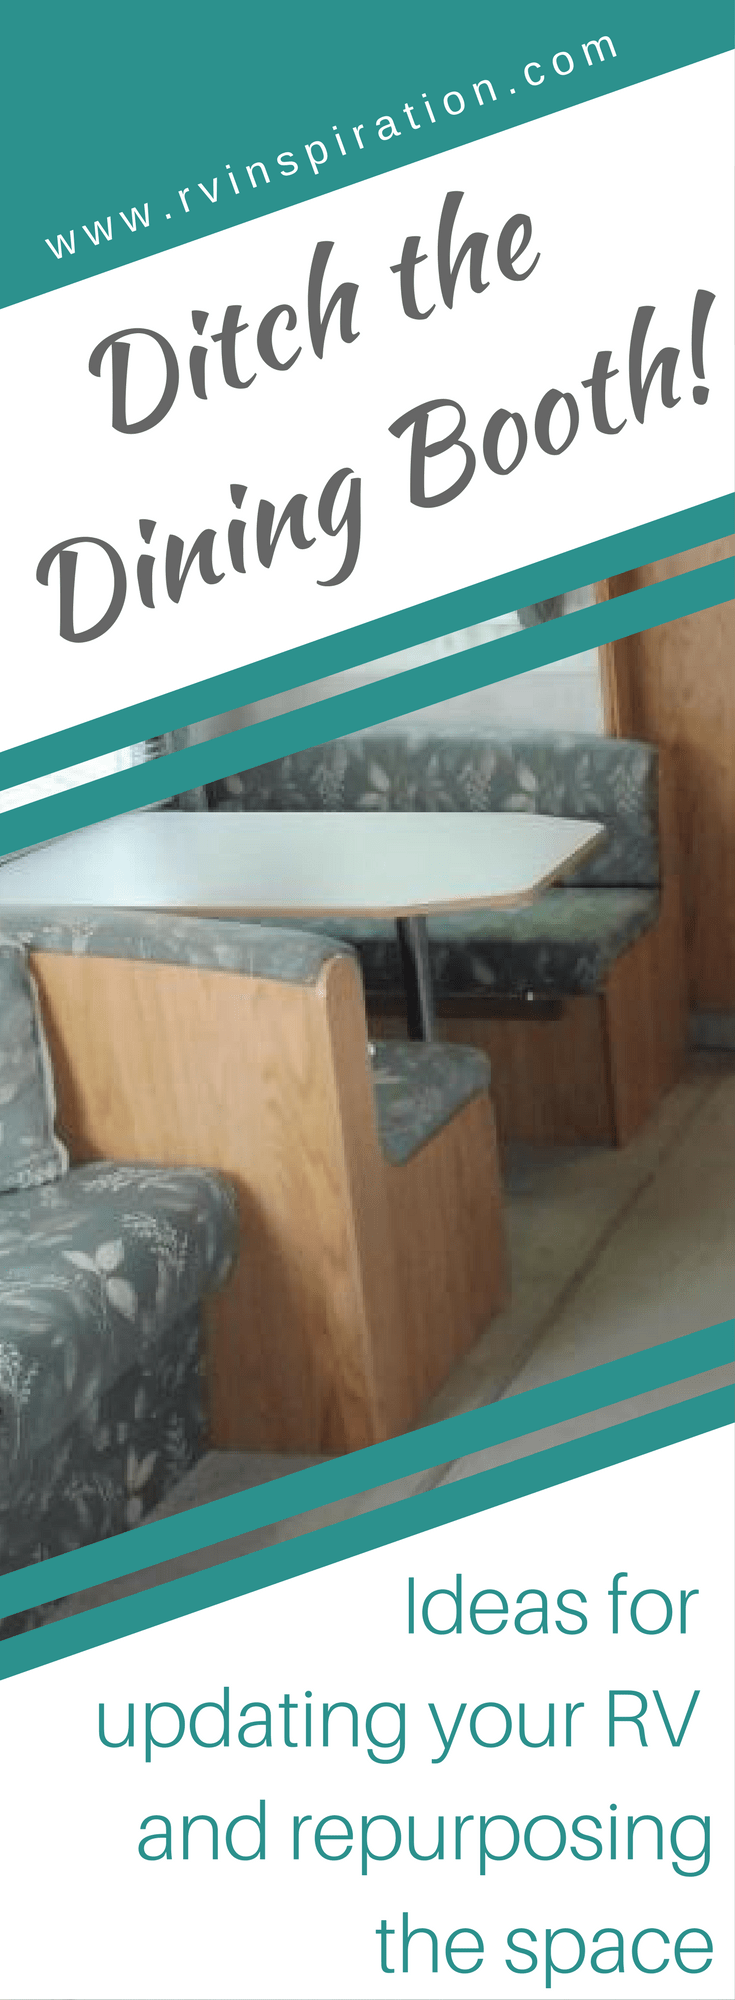 RV Owners Who Replaced Their Dining Booths   RVs, campers, travel trailers, and motorhomes without the dinette booth